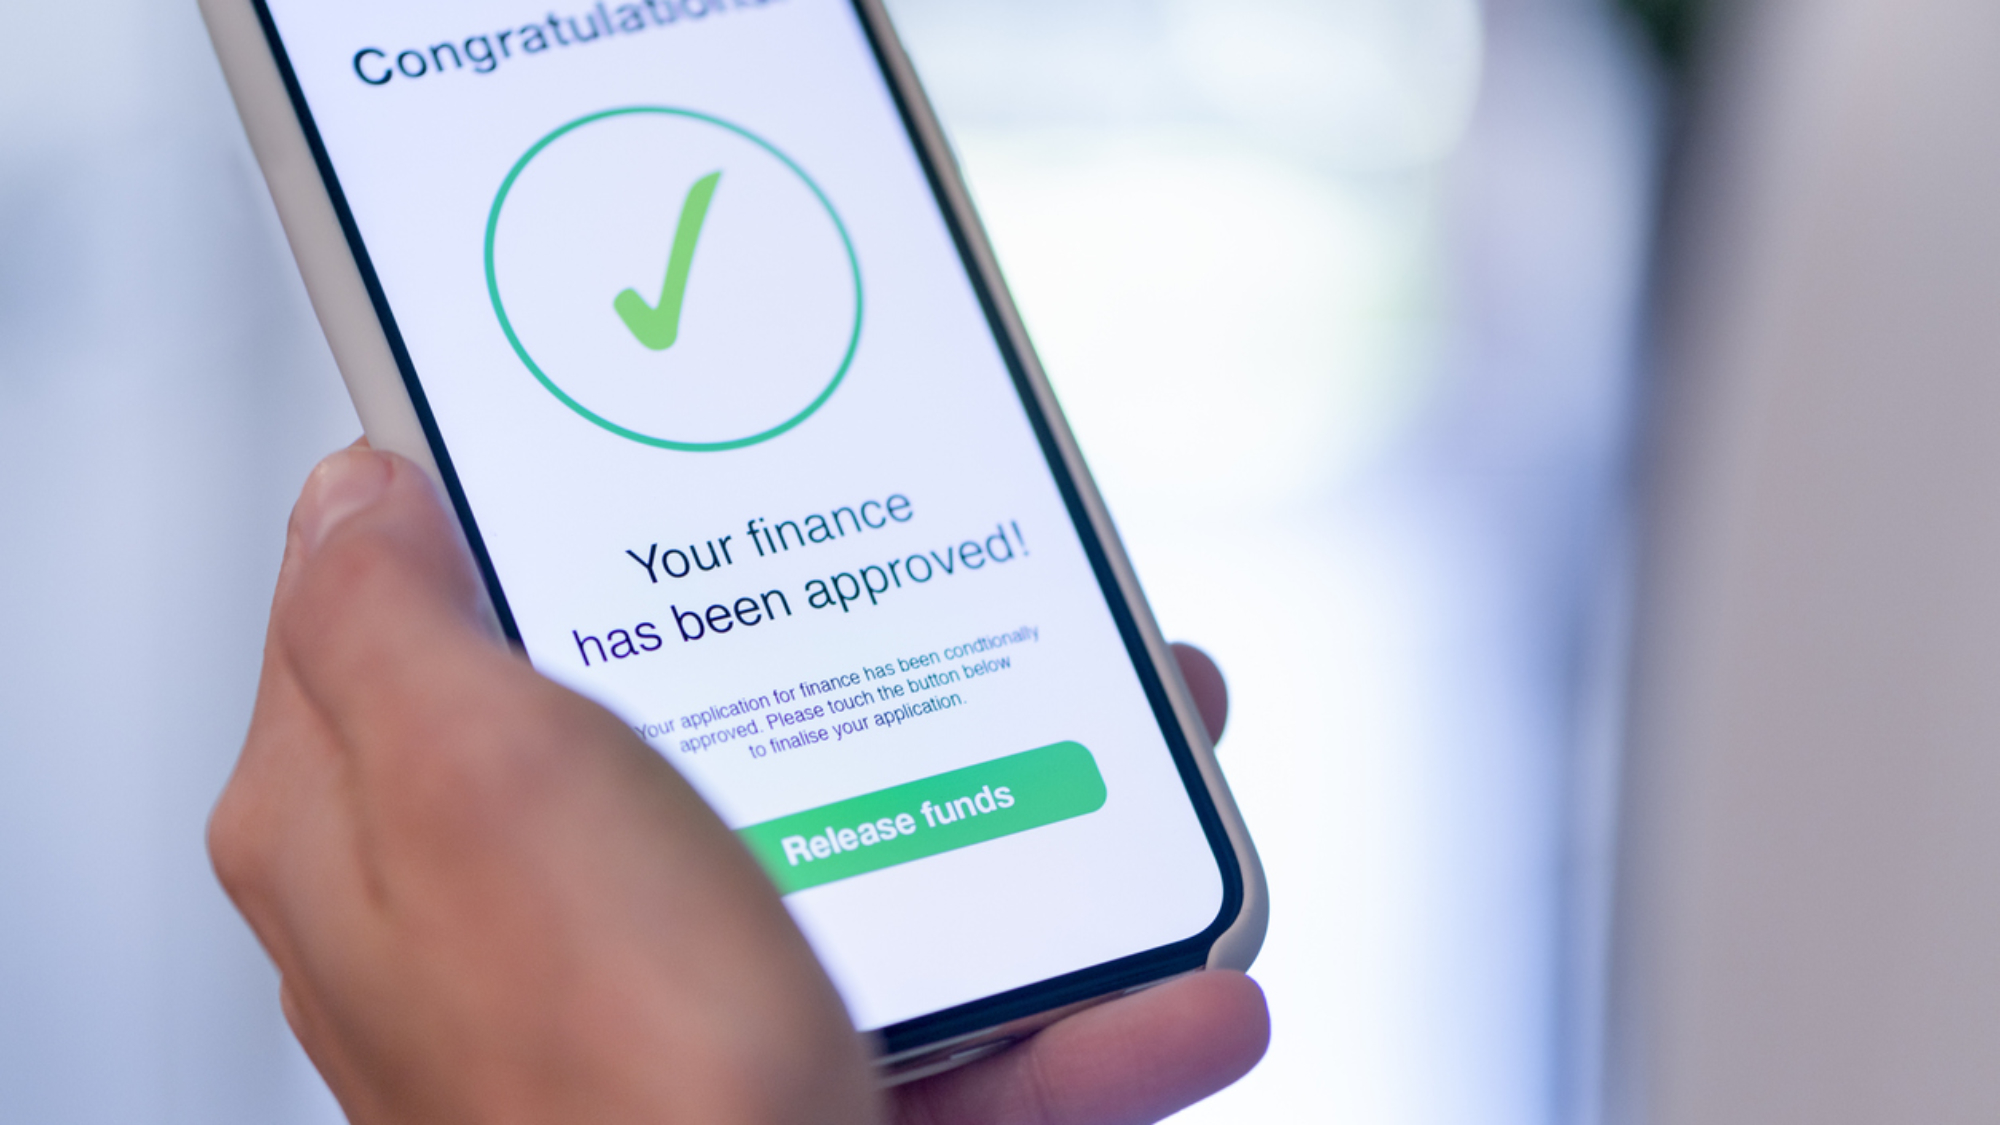 Woman holding a mobile phone with loan application approval. She is being prompted to press a button to release the funds. Close up.